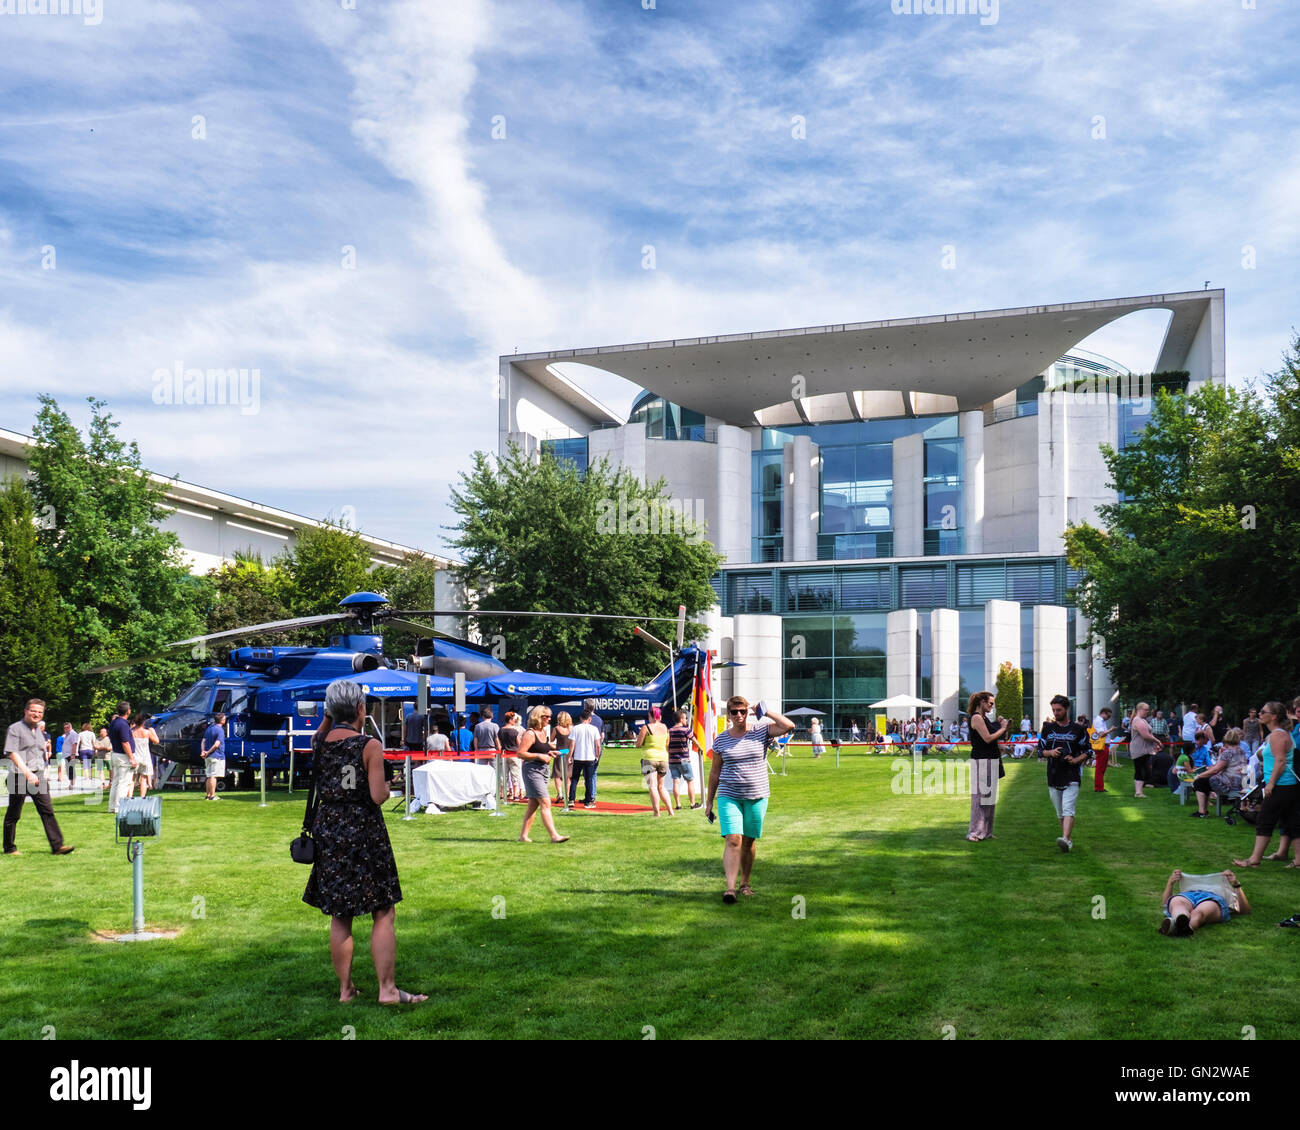 Berlin. Germany, 28th August 2016. Every August or September an 'open day' is held when Government buildings - Stock Image